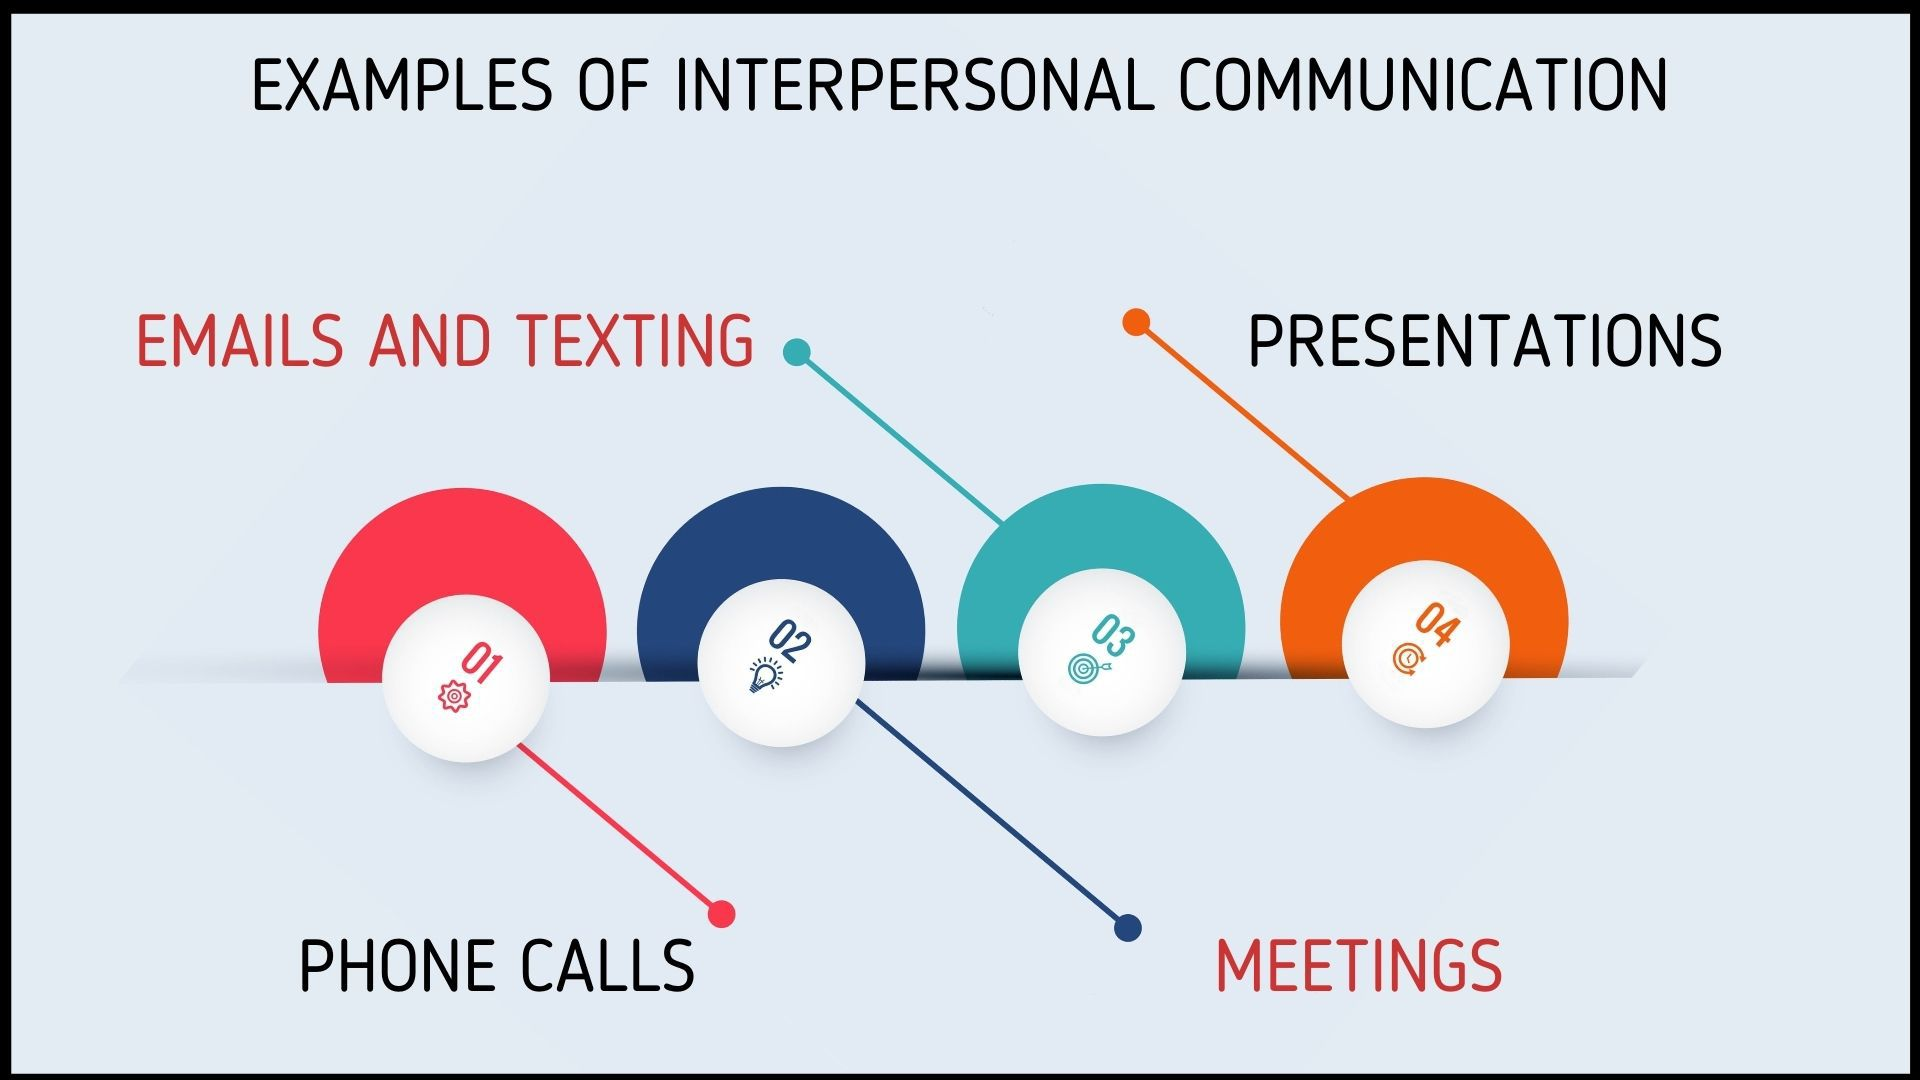 Example of interpersonal communication